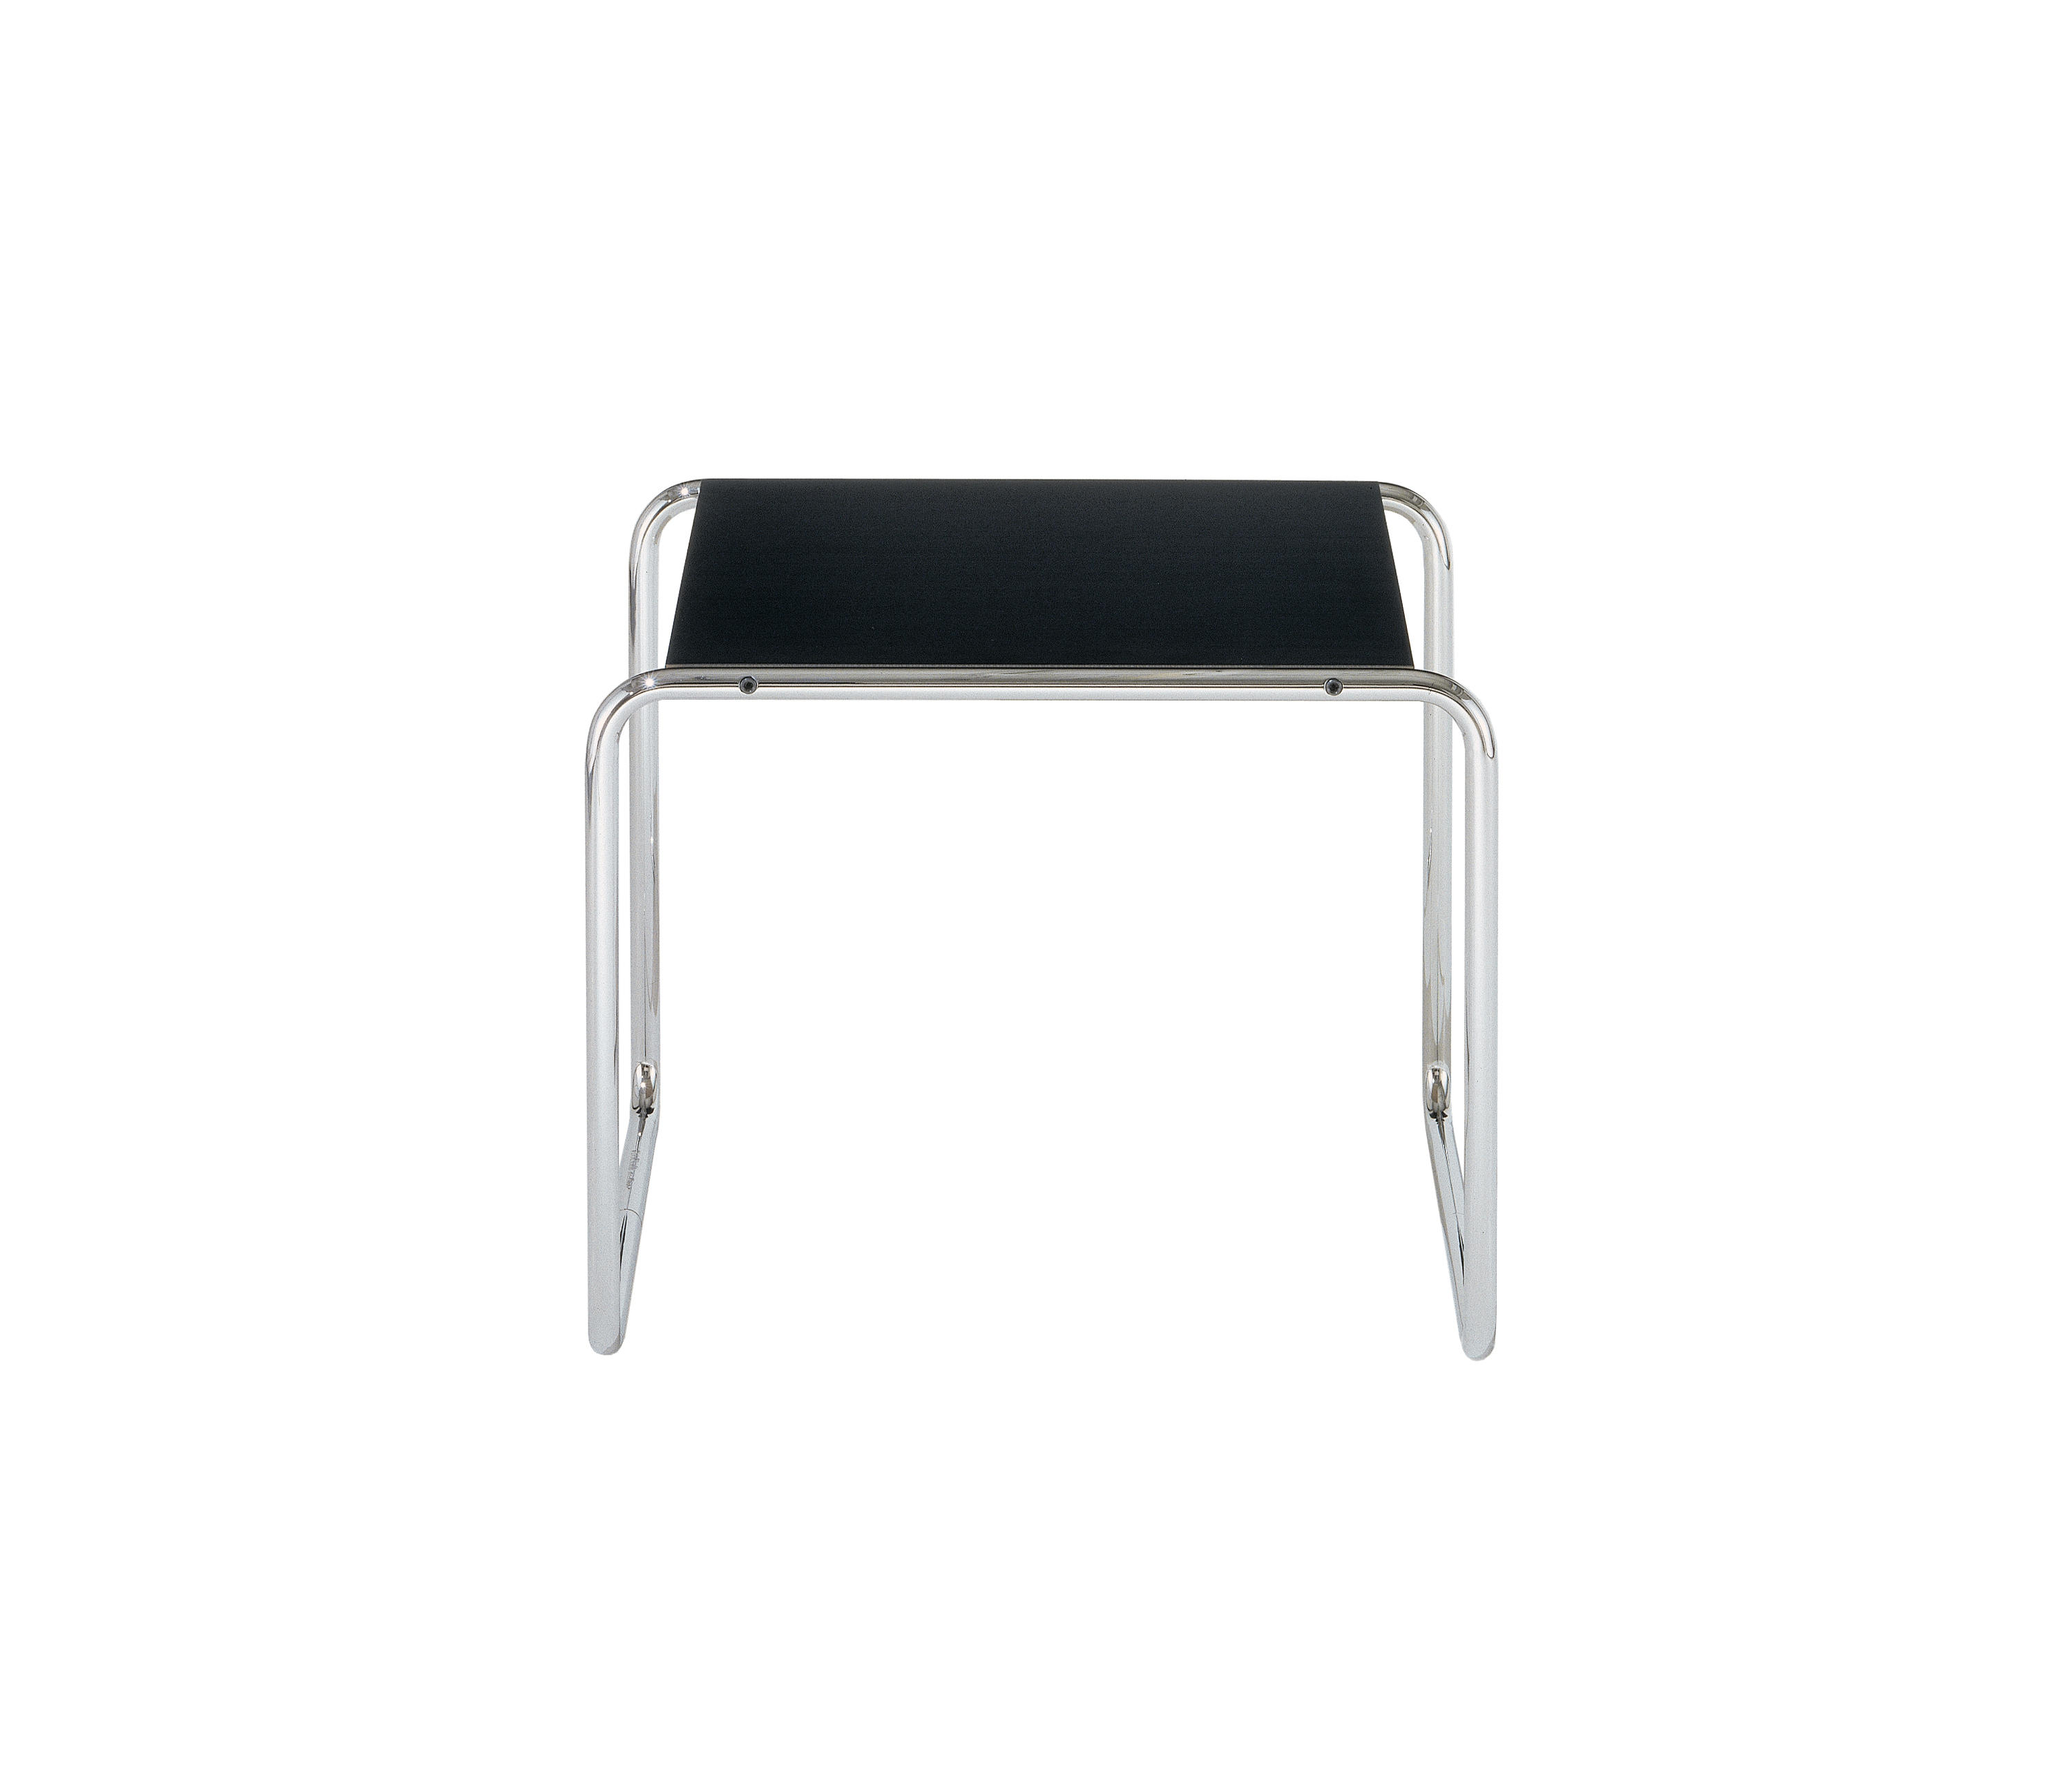 LACCIO TABLE Side tables from Knoll International